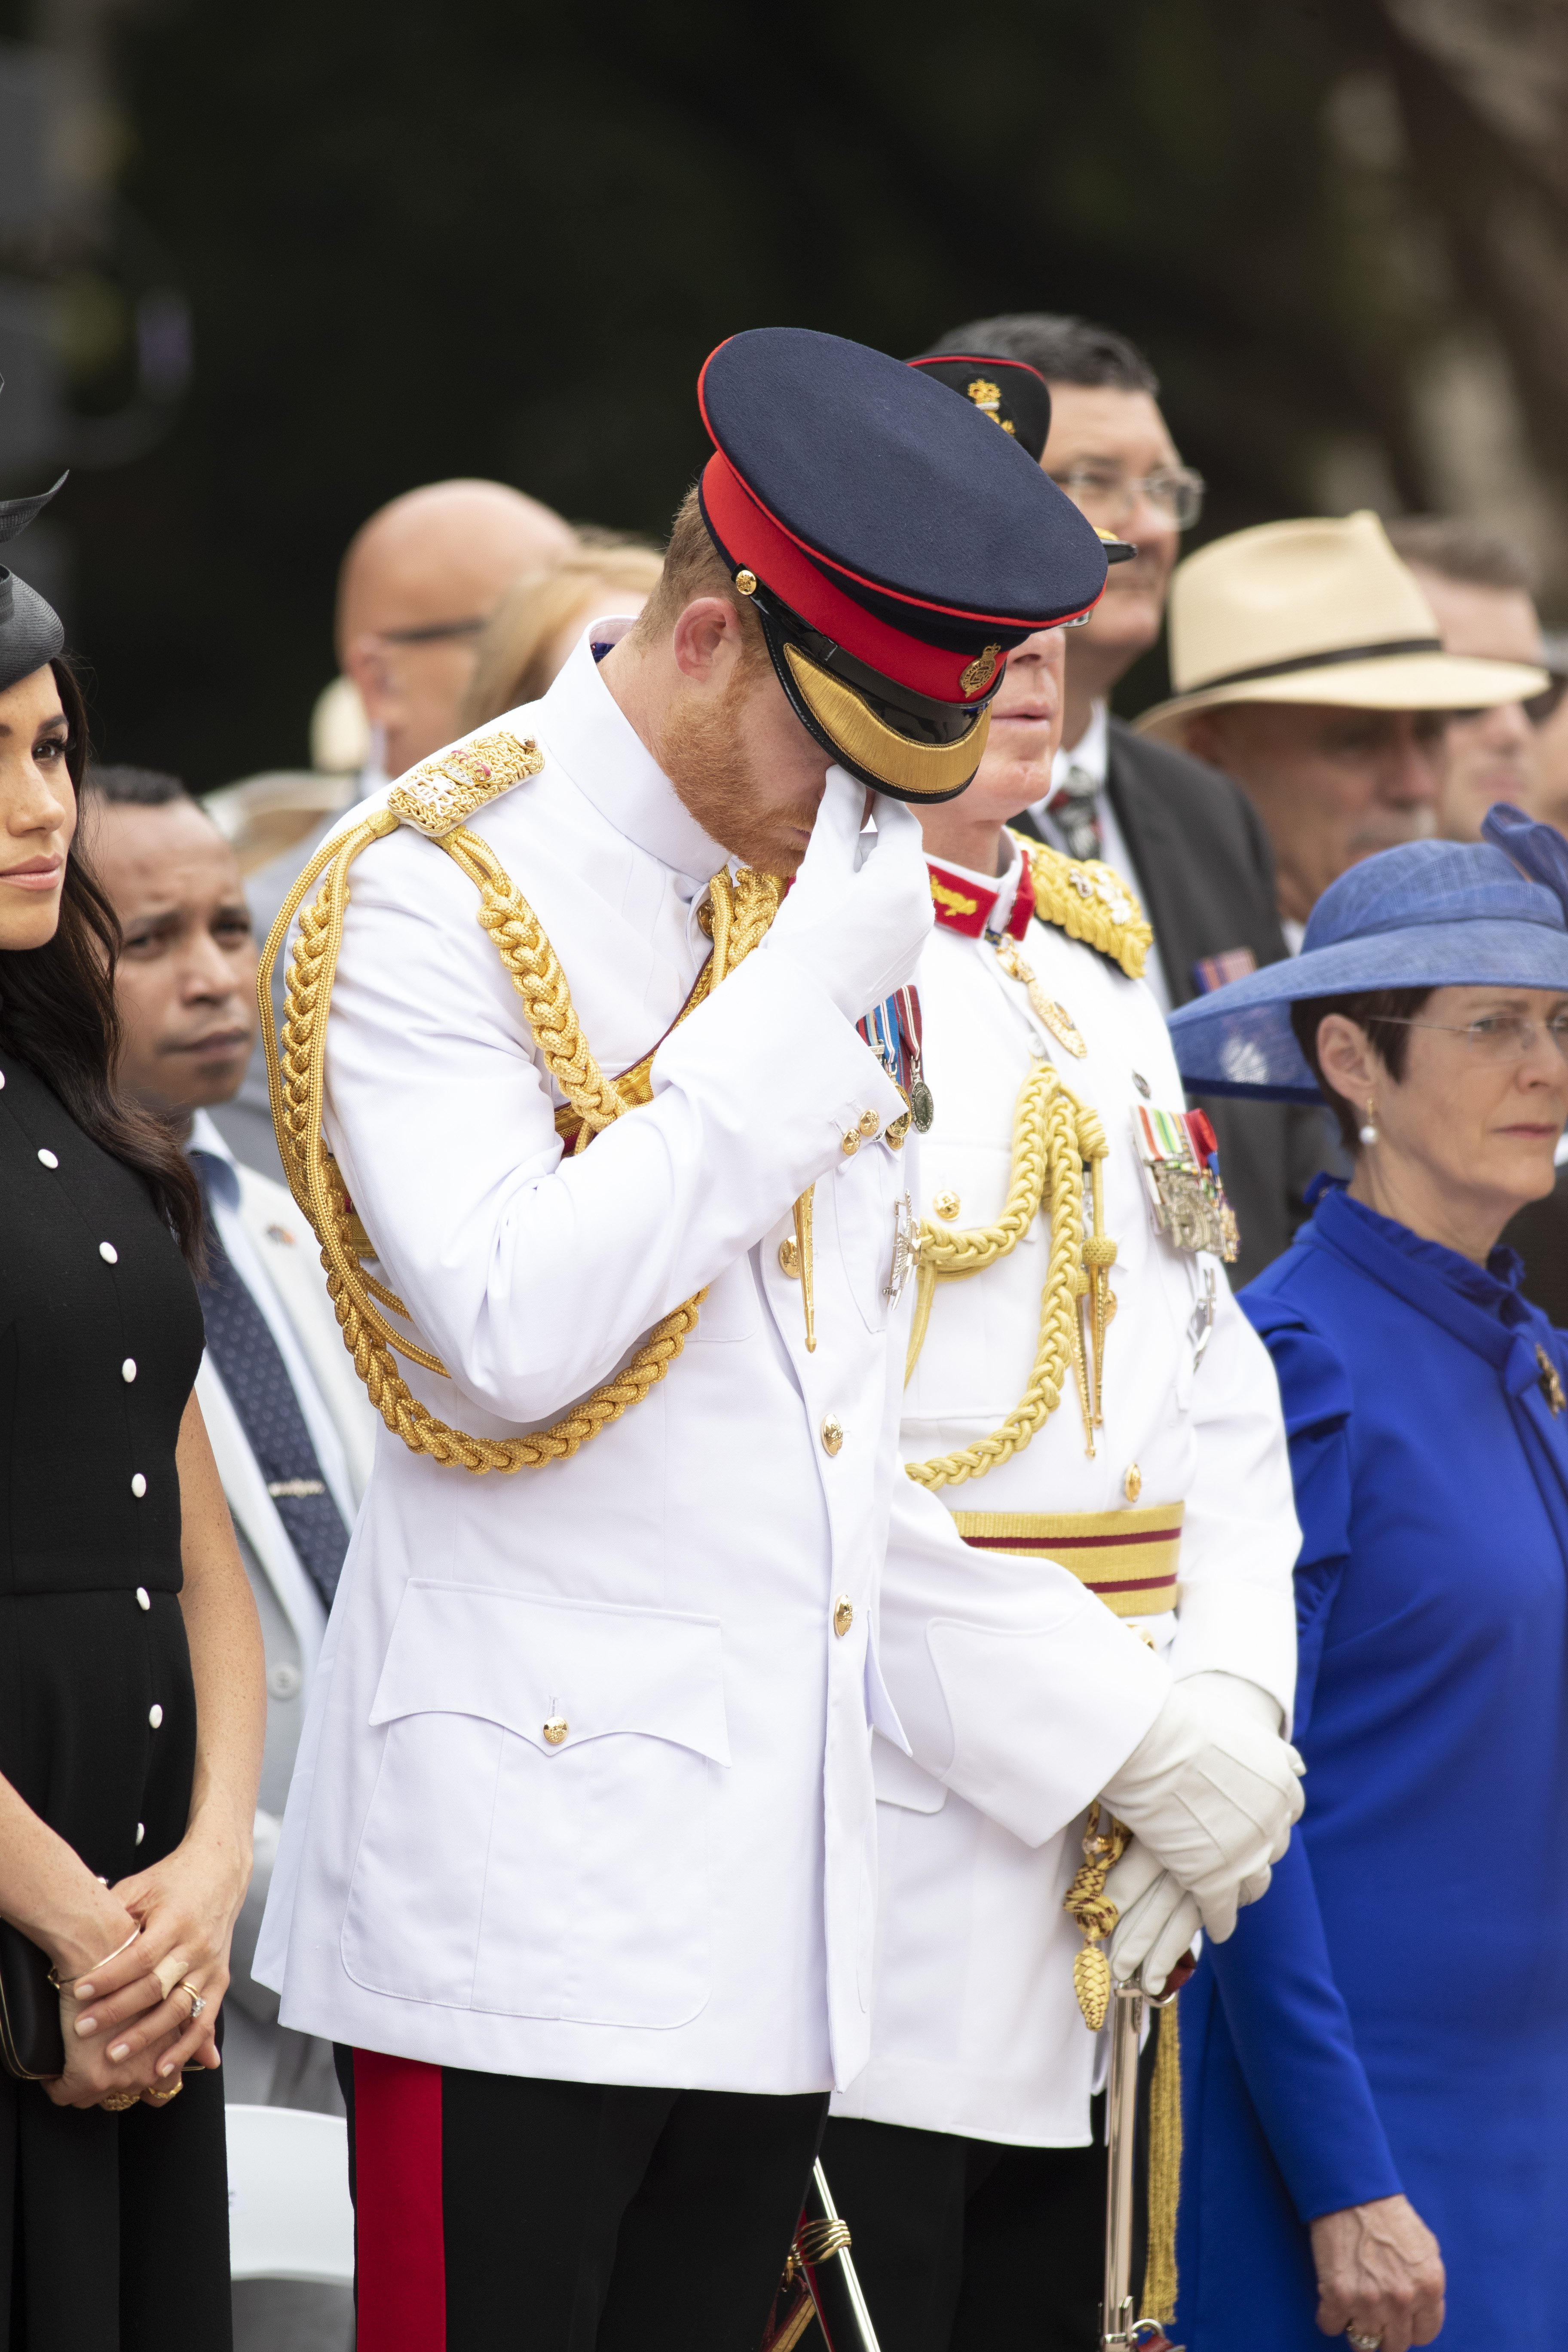 Image Credits: Getty Images / Ian Vogler - Pool   Prince Harry, Duke of Sussex and Meghan, Duchess of Sussex attend the Official opening of ANZAC Memorial in Hyde Park, on October 20, 2018 in Sydney, Australia. The Duke and Duchess of Sussex are on their official 16-day Autumn tour visiting cities in Australia, Fiji, Tonga and New Zealand.